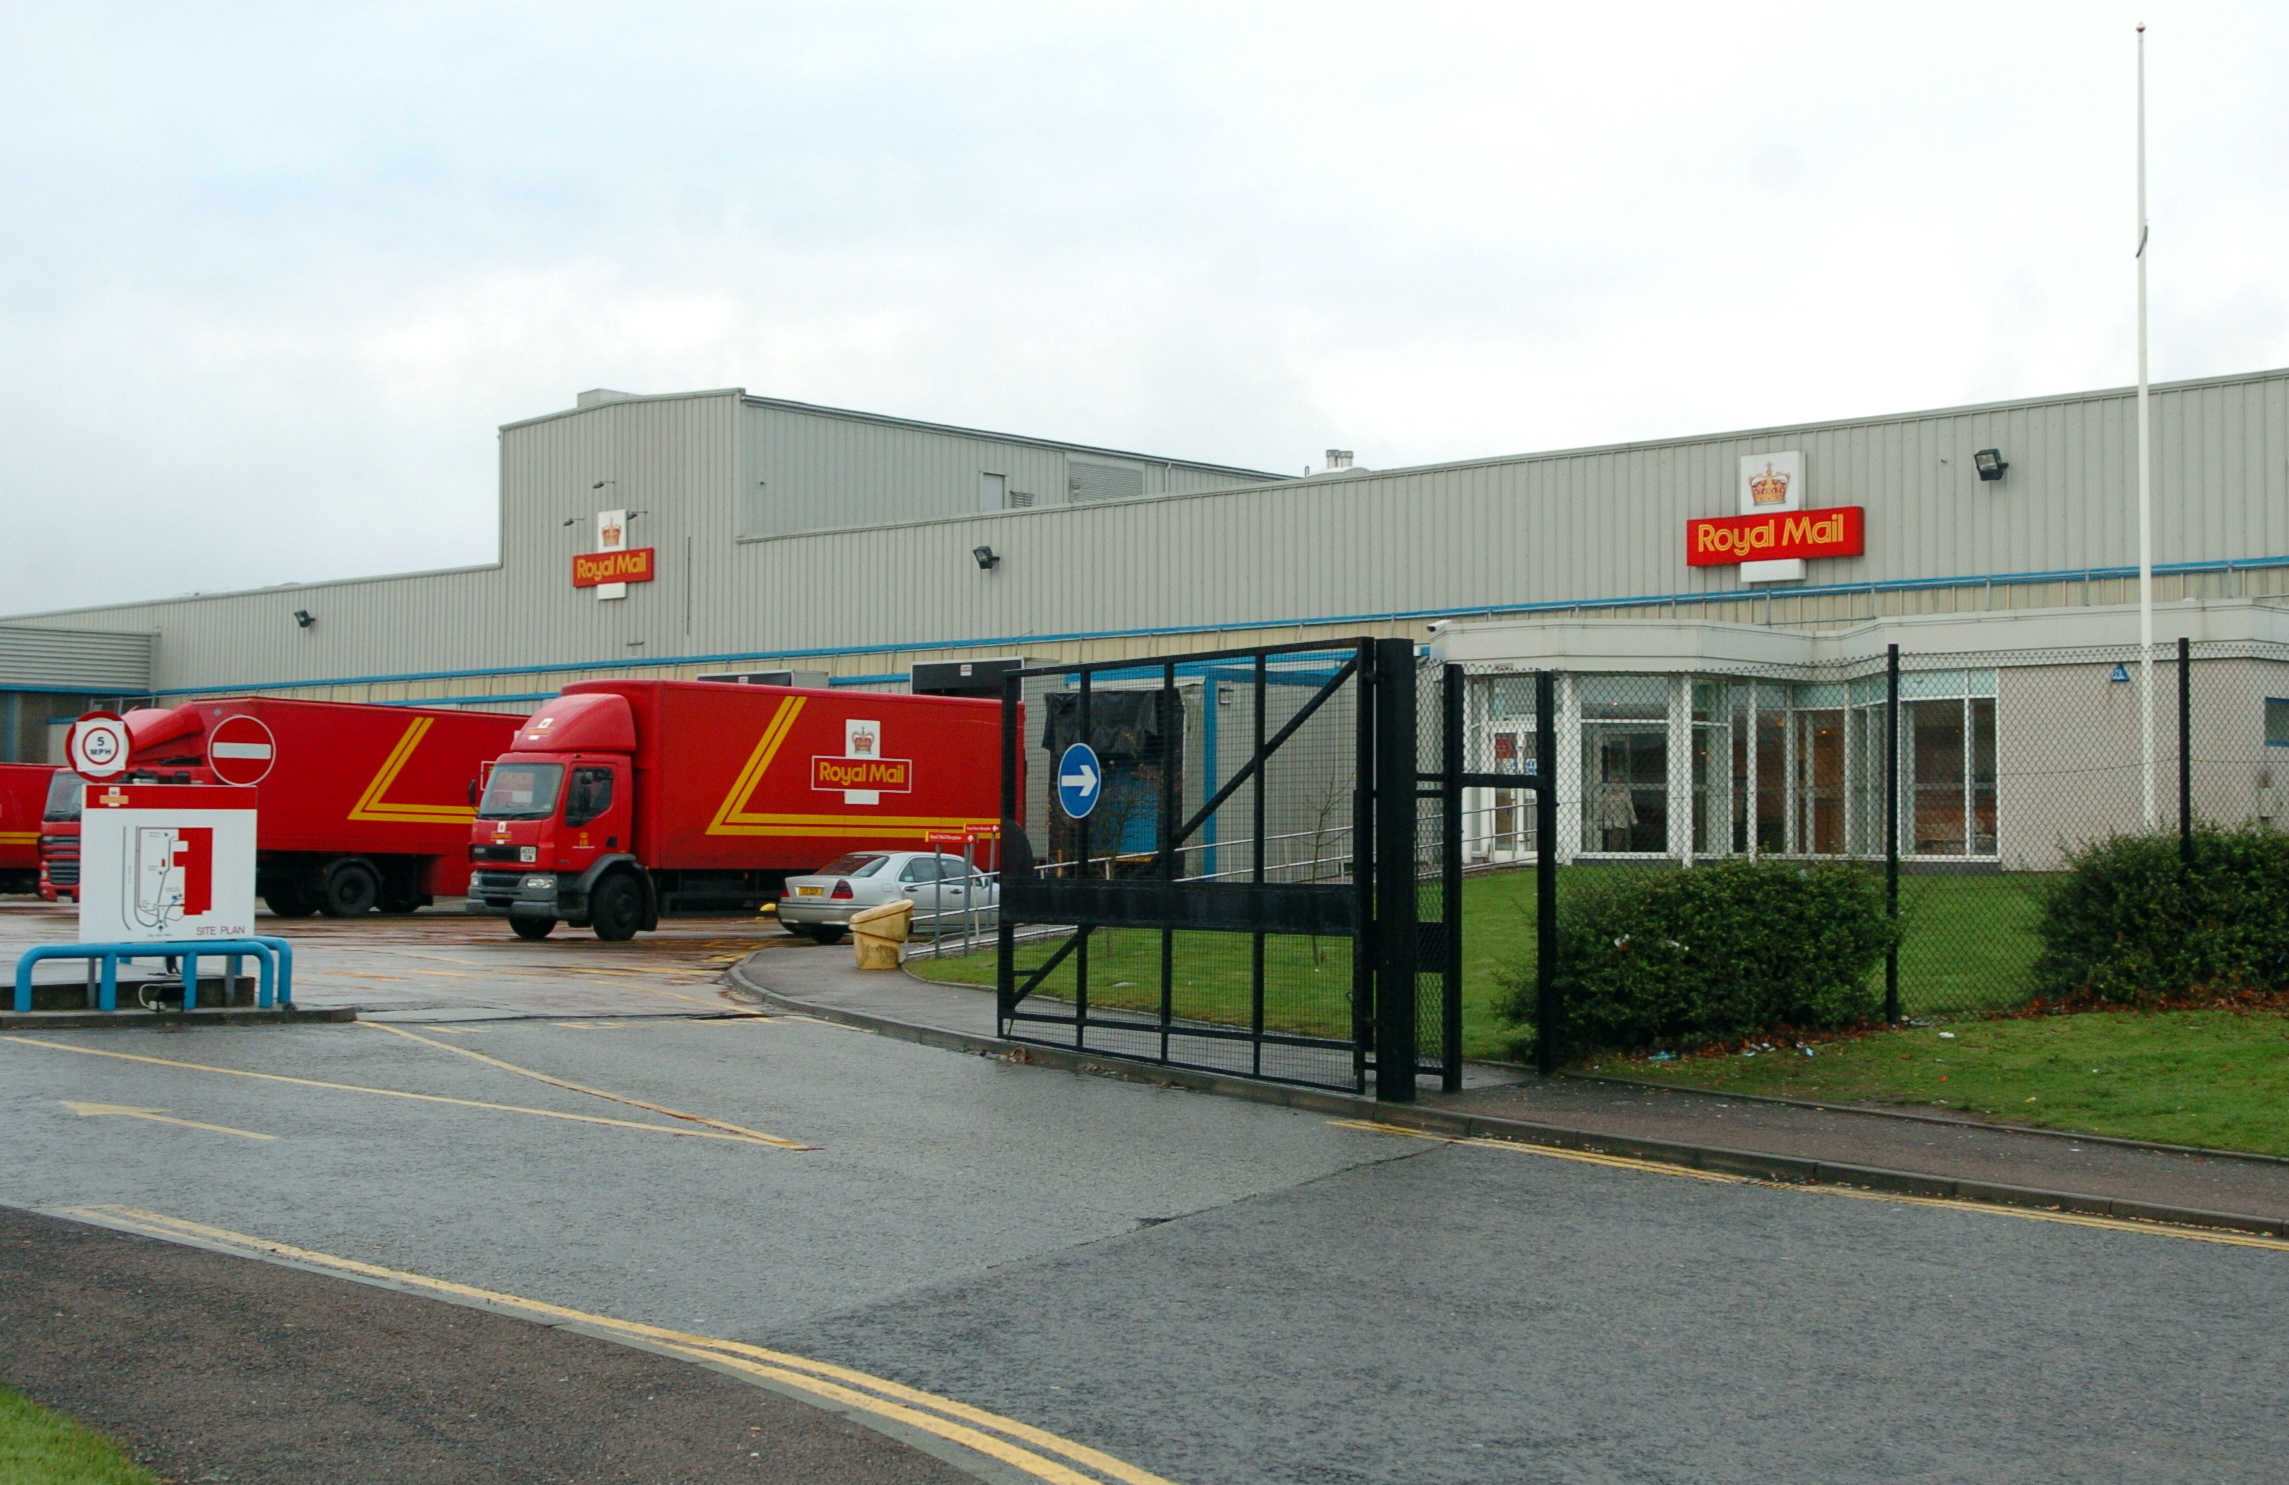 The Royal Mail depot in Aberdeen where drugs were found.